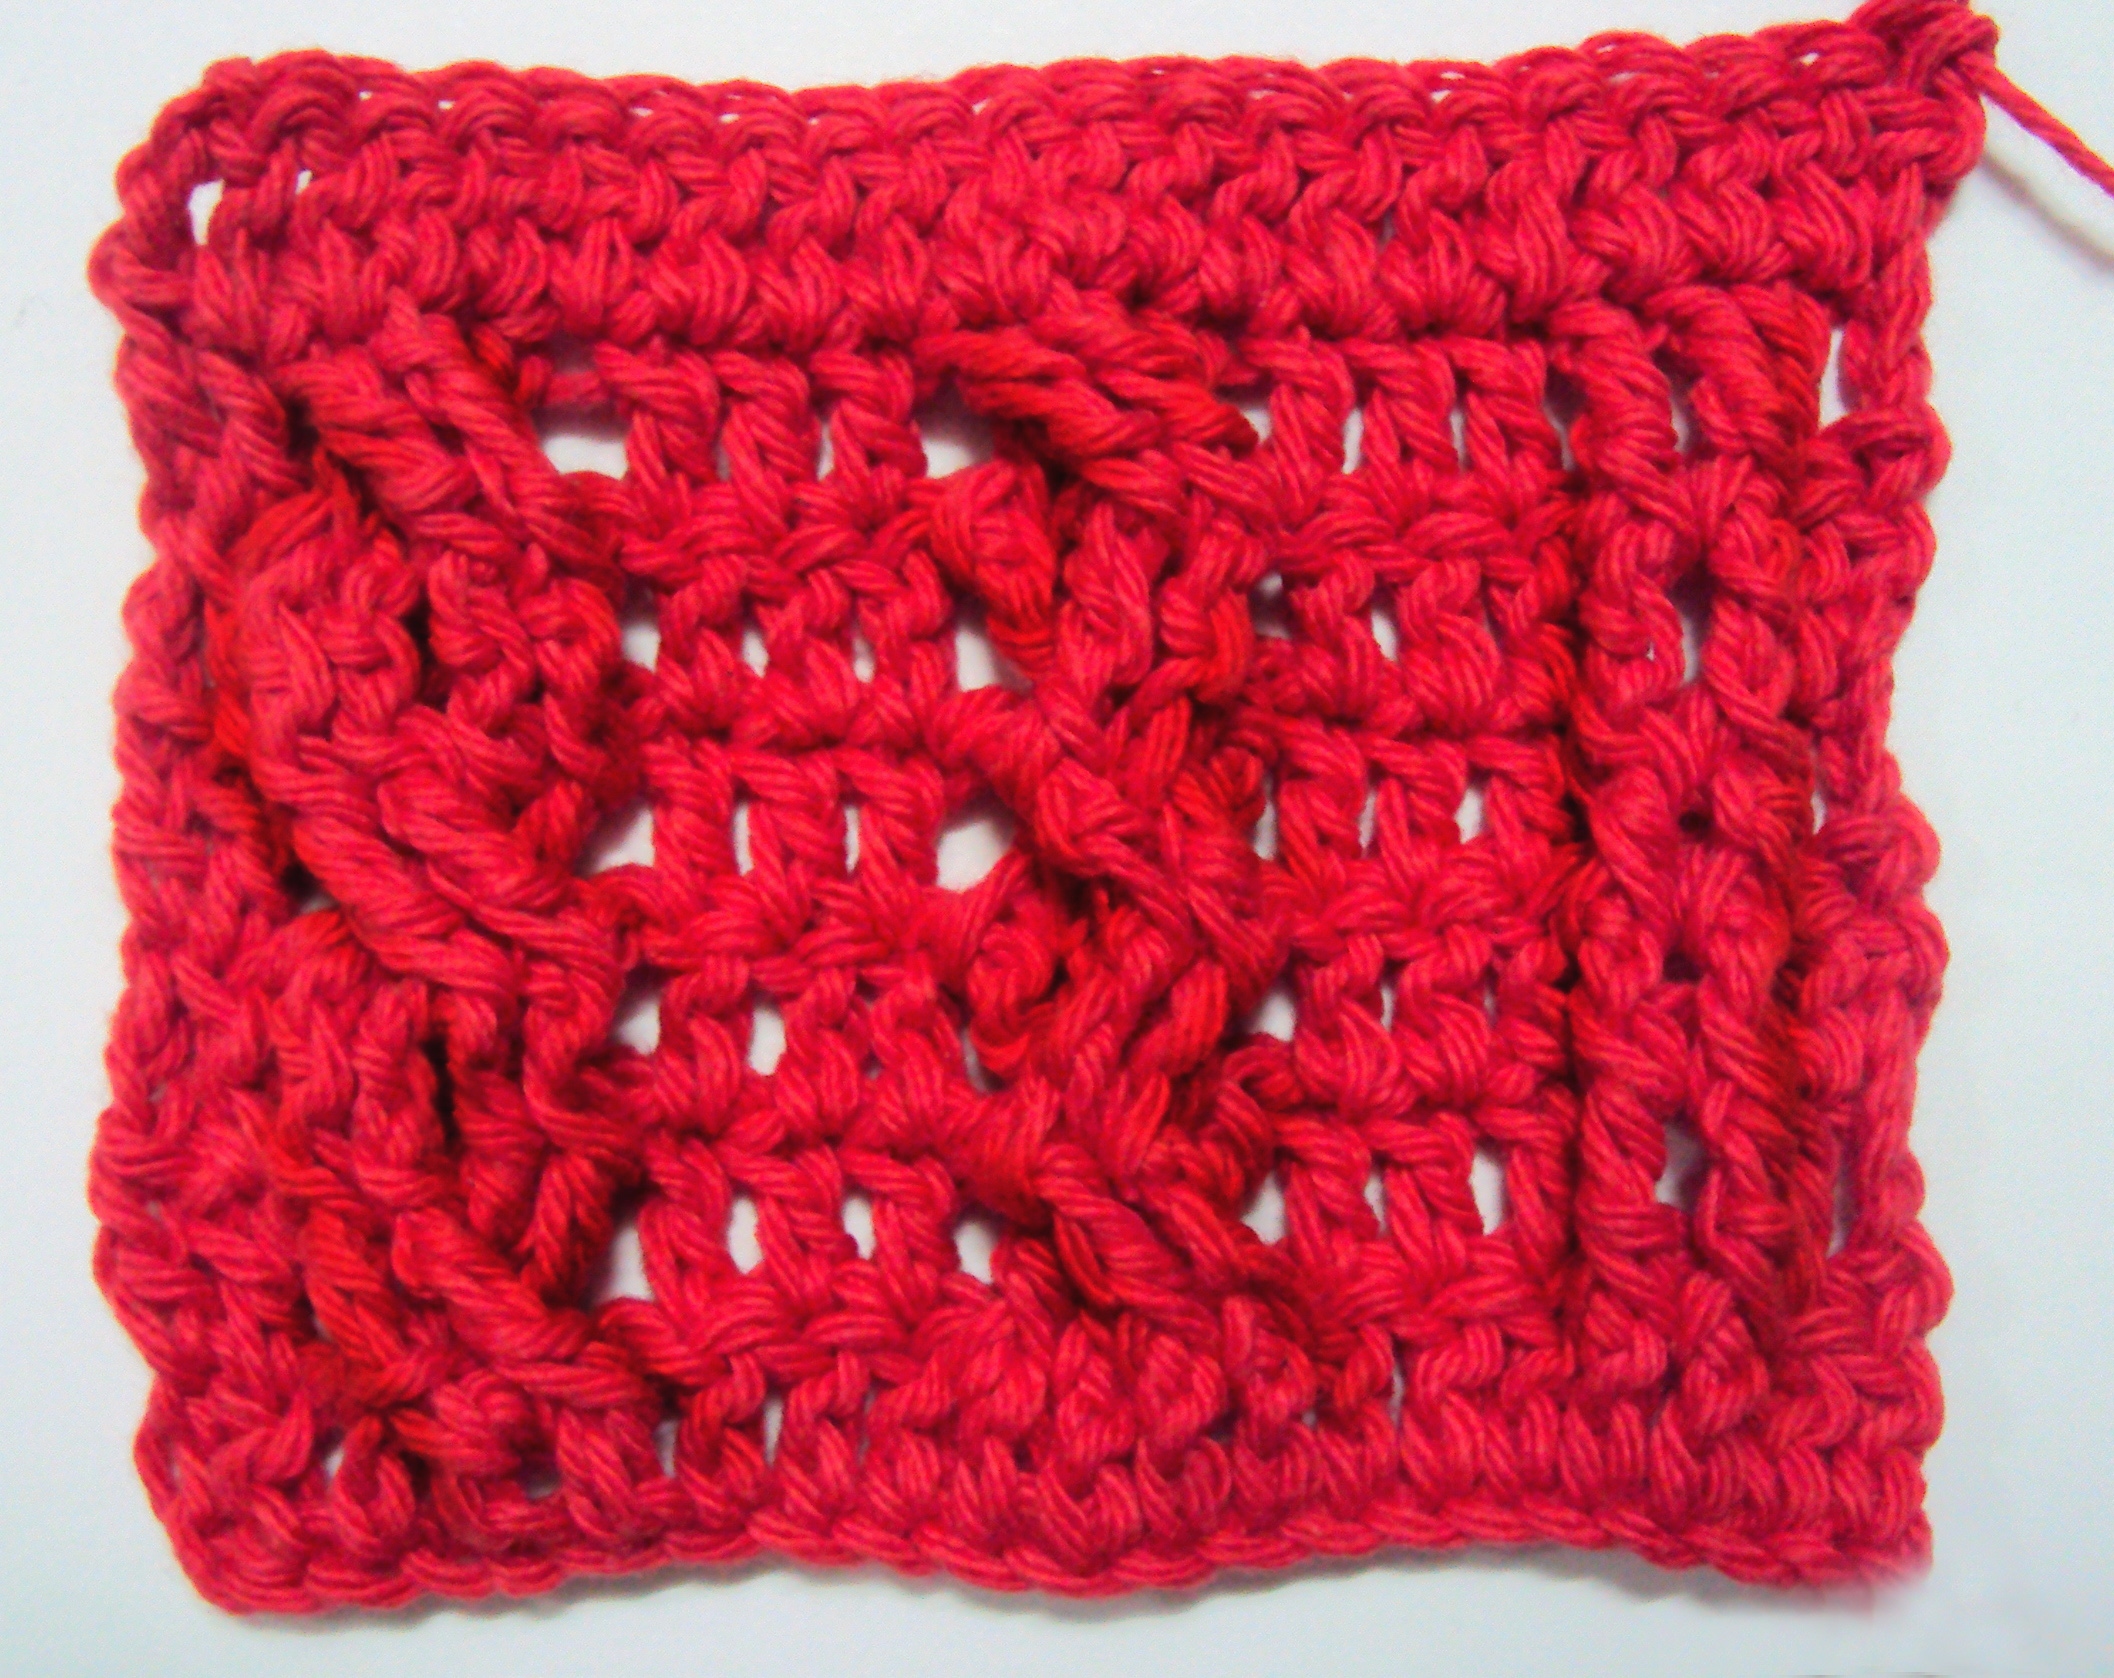 Crochet Stitches How to crochet: cable stitches